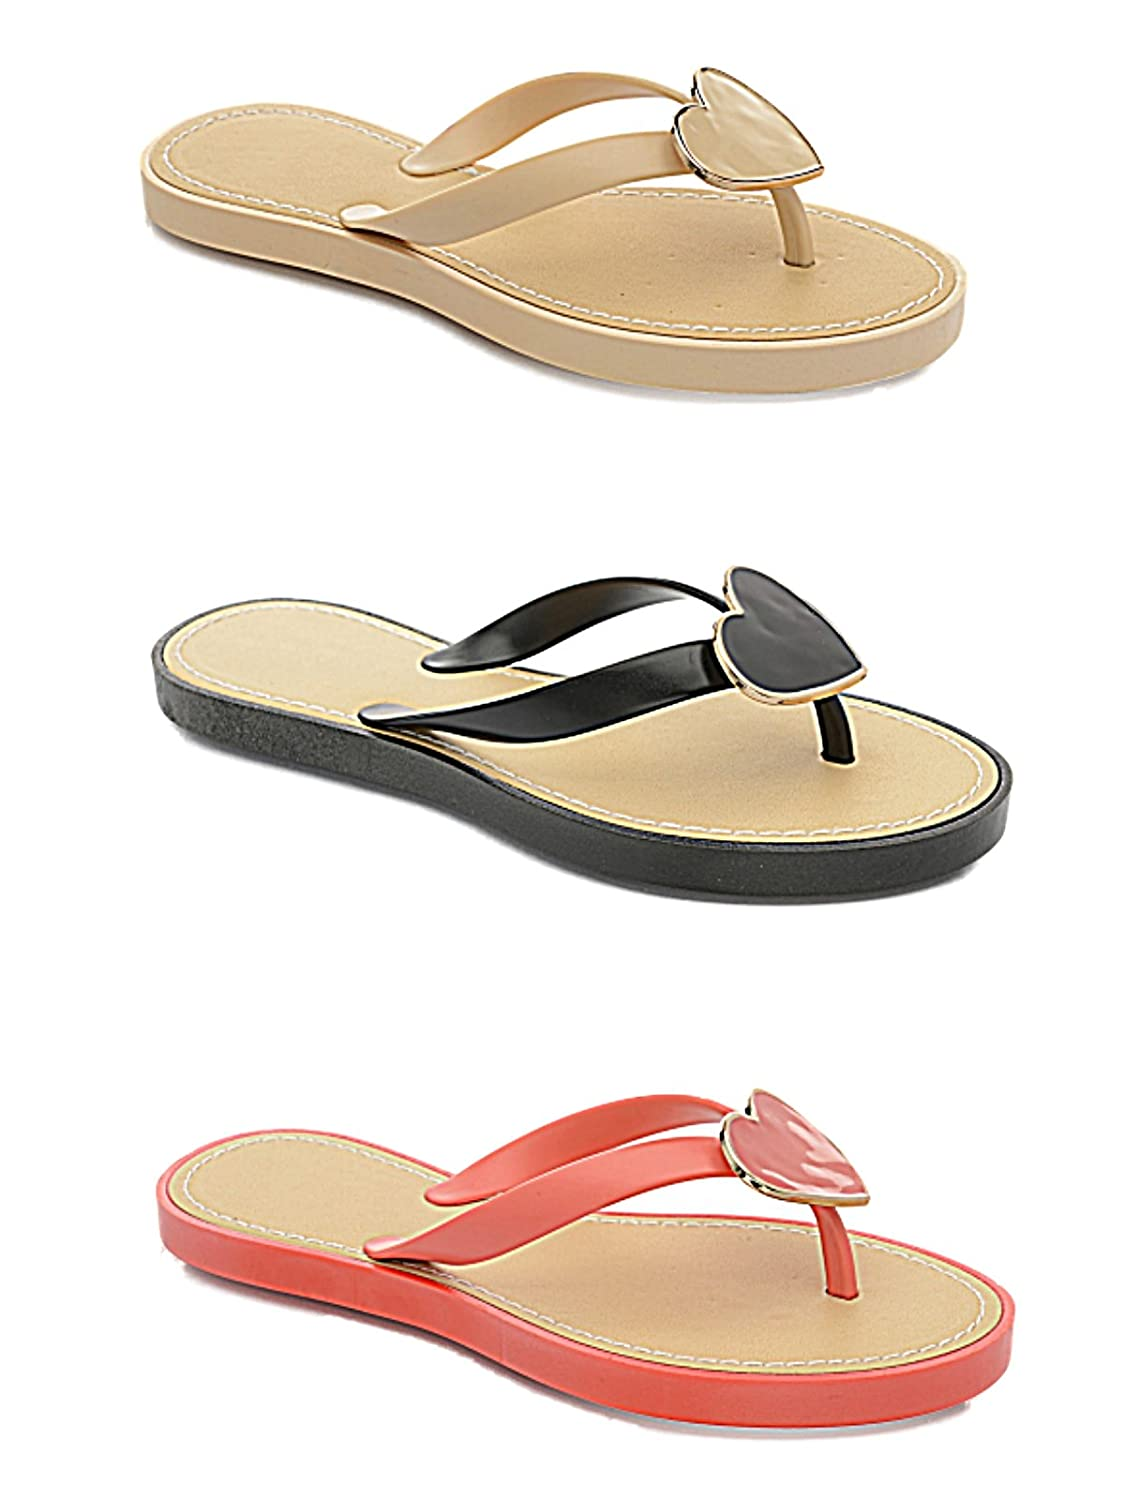 Ladies Girl Jelly LP3836 Heart Flat Flip Flop Toe Post Summer Beach Holiday  Sandal Shoe Size 3-8 (UK 4, Nude): Amazon.co.uk: Shoes & Bags